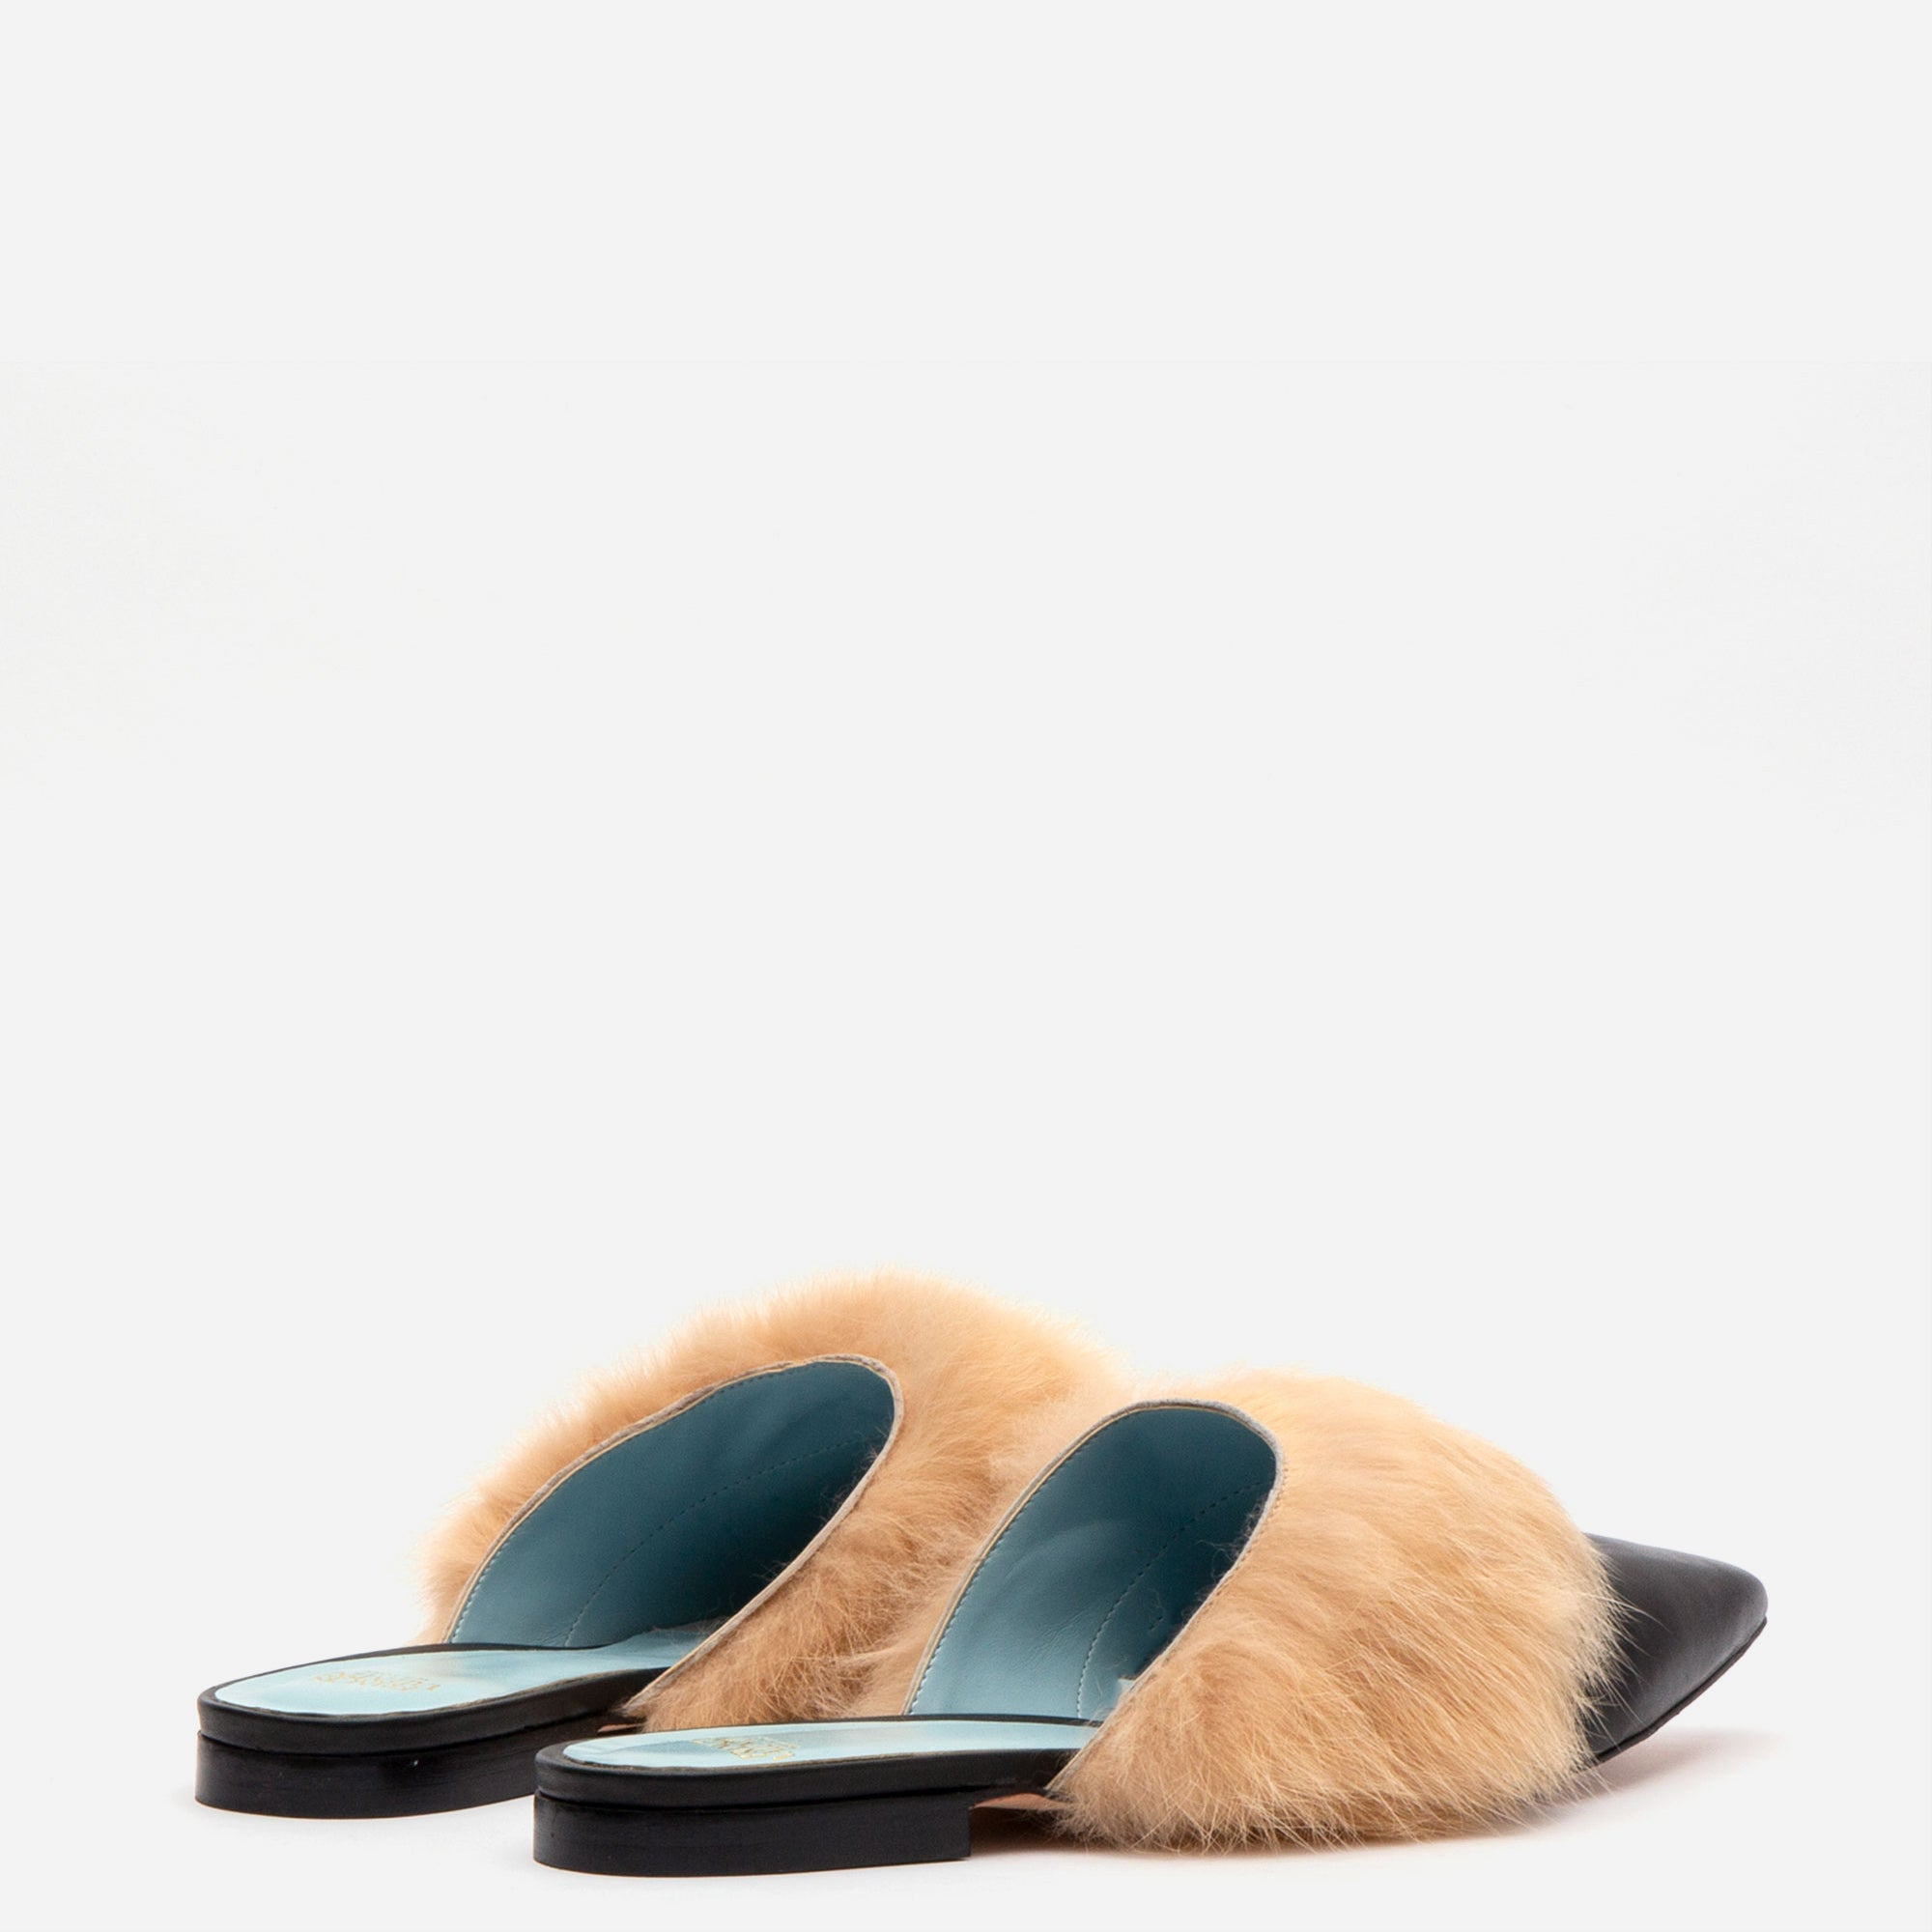 Paloma Calf Leather Fur Cuff Mules Black Camel